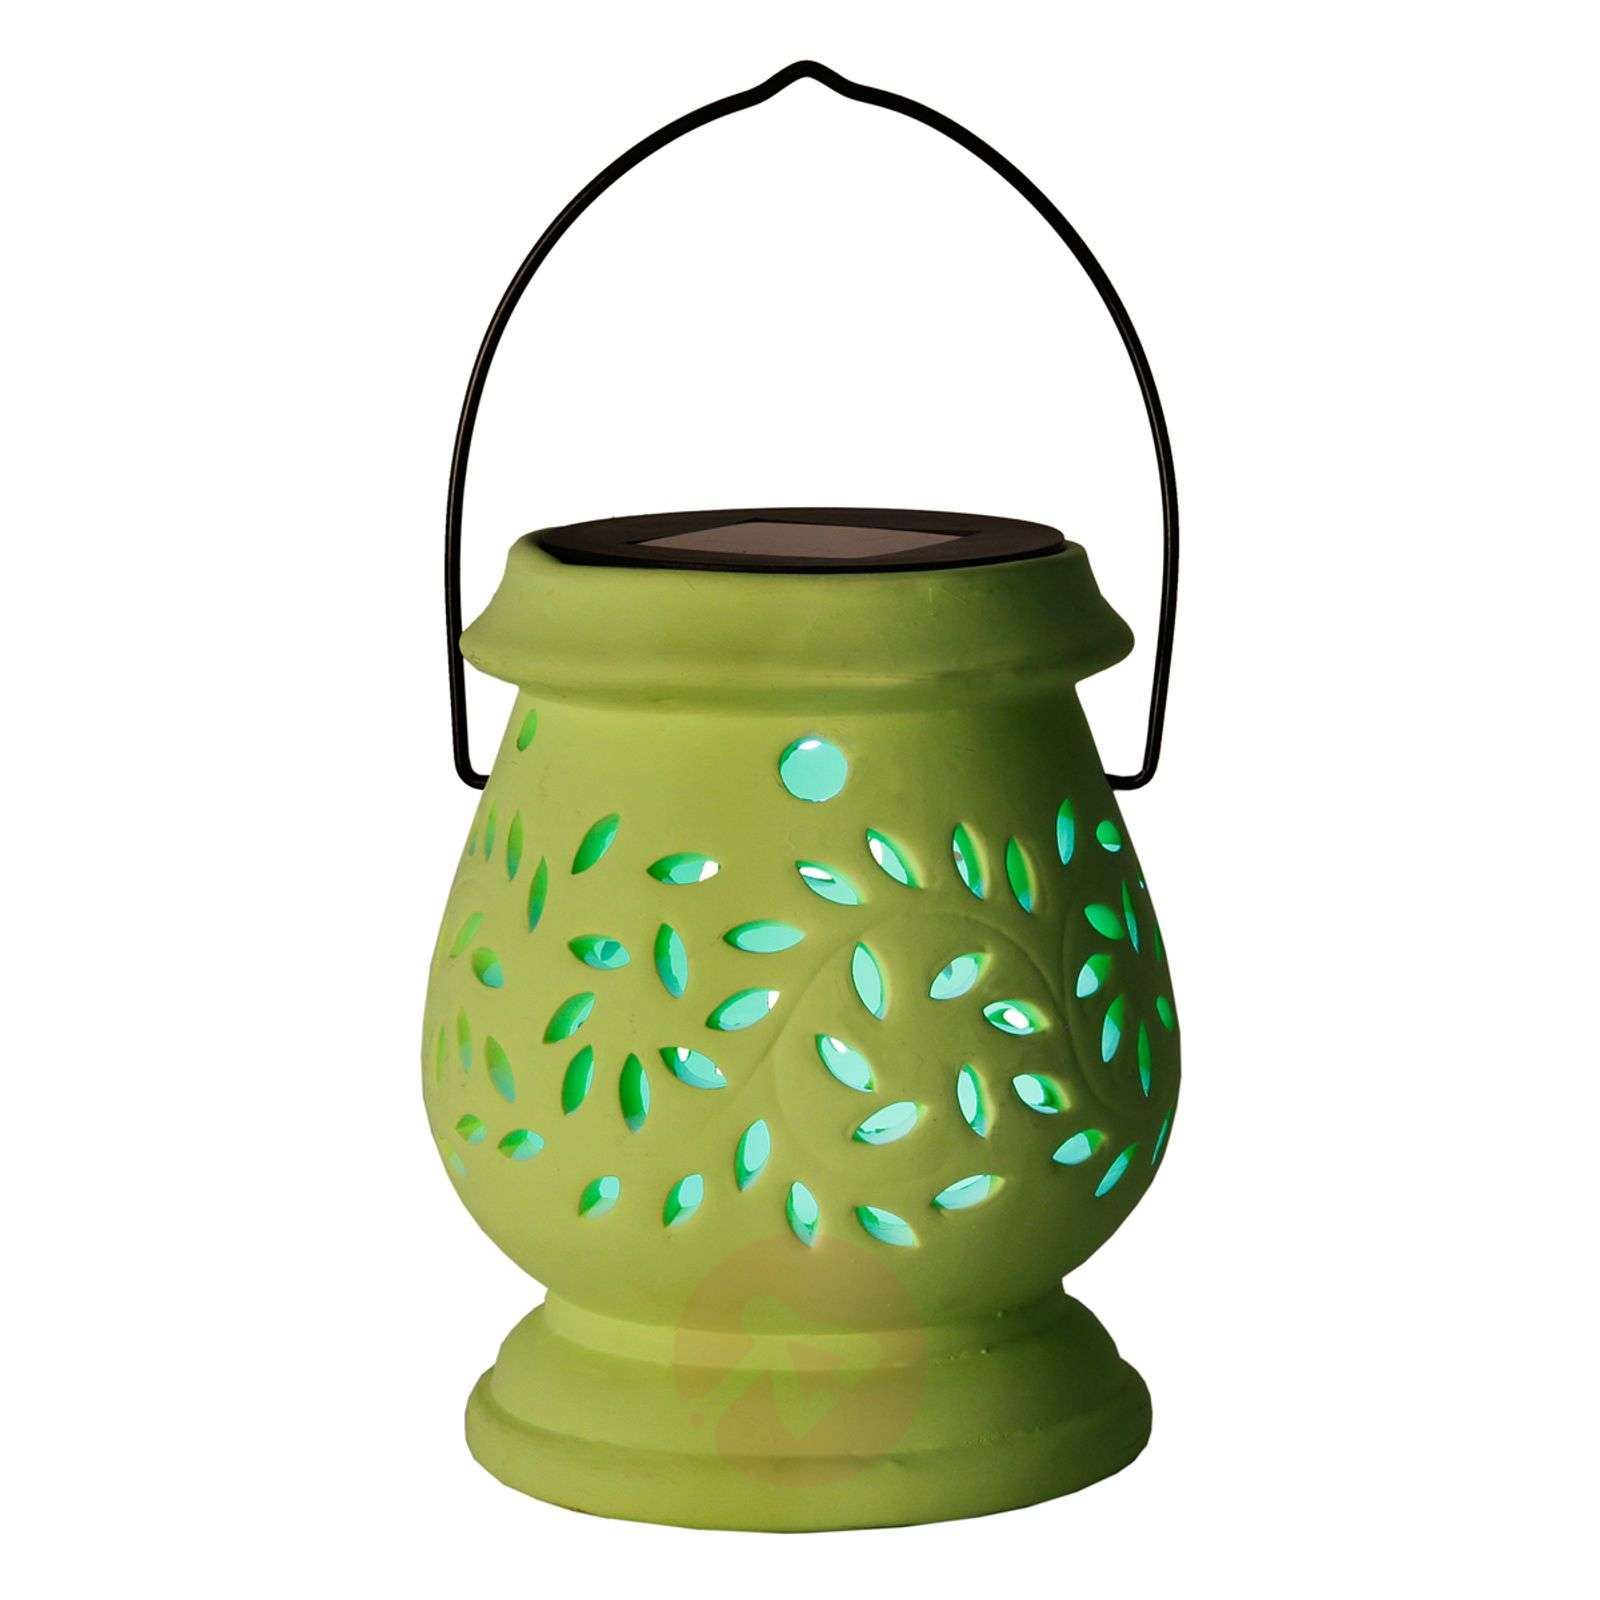 Photophore LED solaire vert Clay Lantern-1522714-01